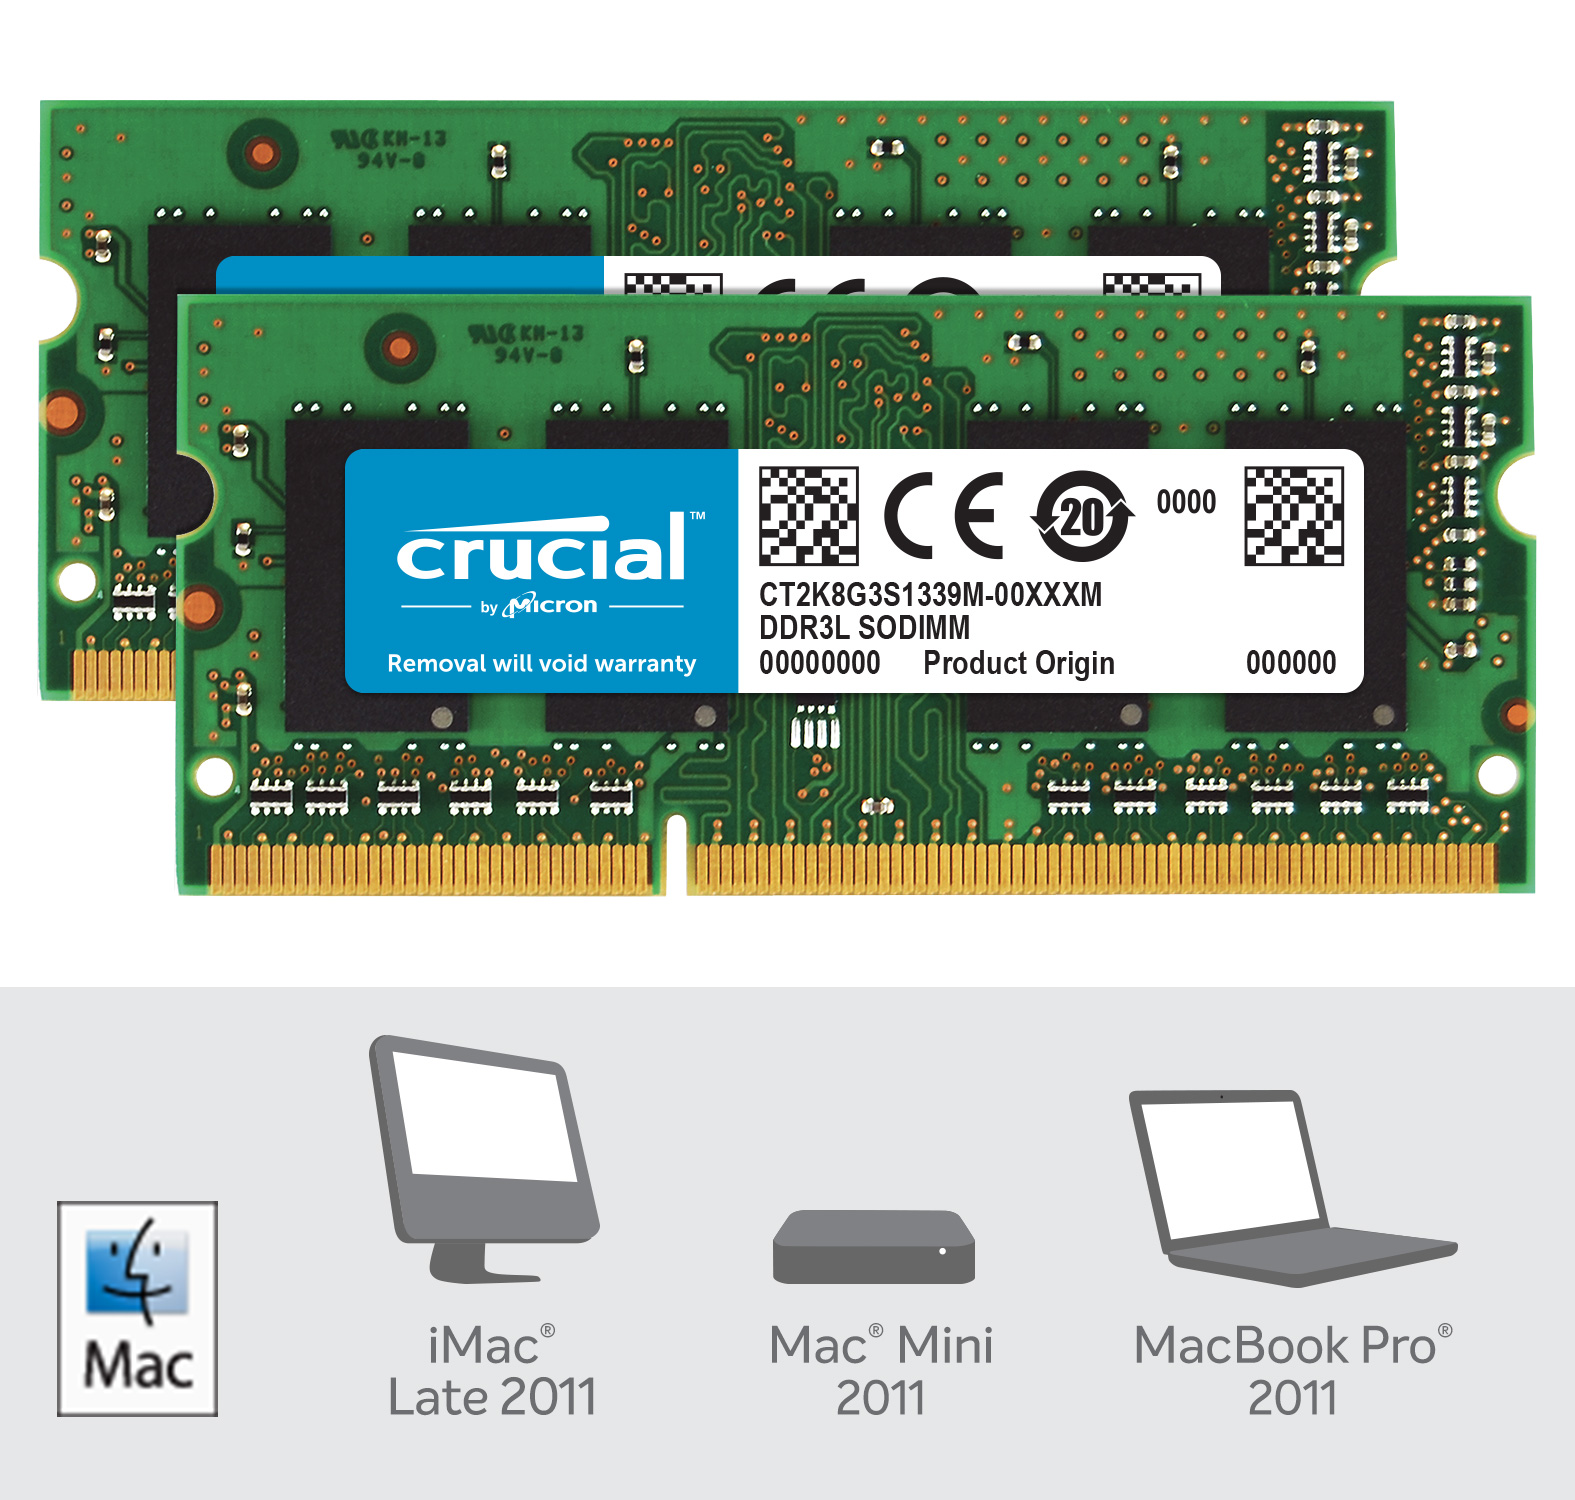 Crucial 16GB Kit (2 x 8GB) DDR3L-1333 SODIMM Memory for Mac- view 2